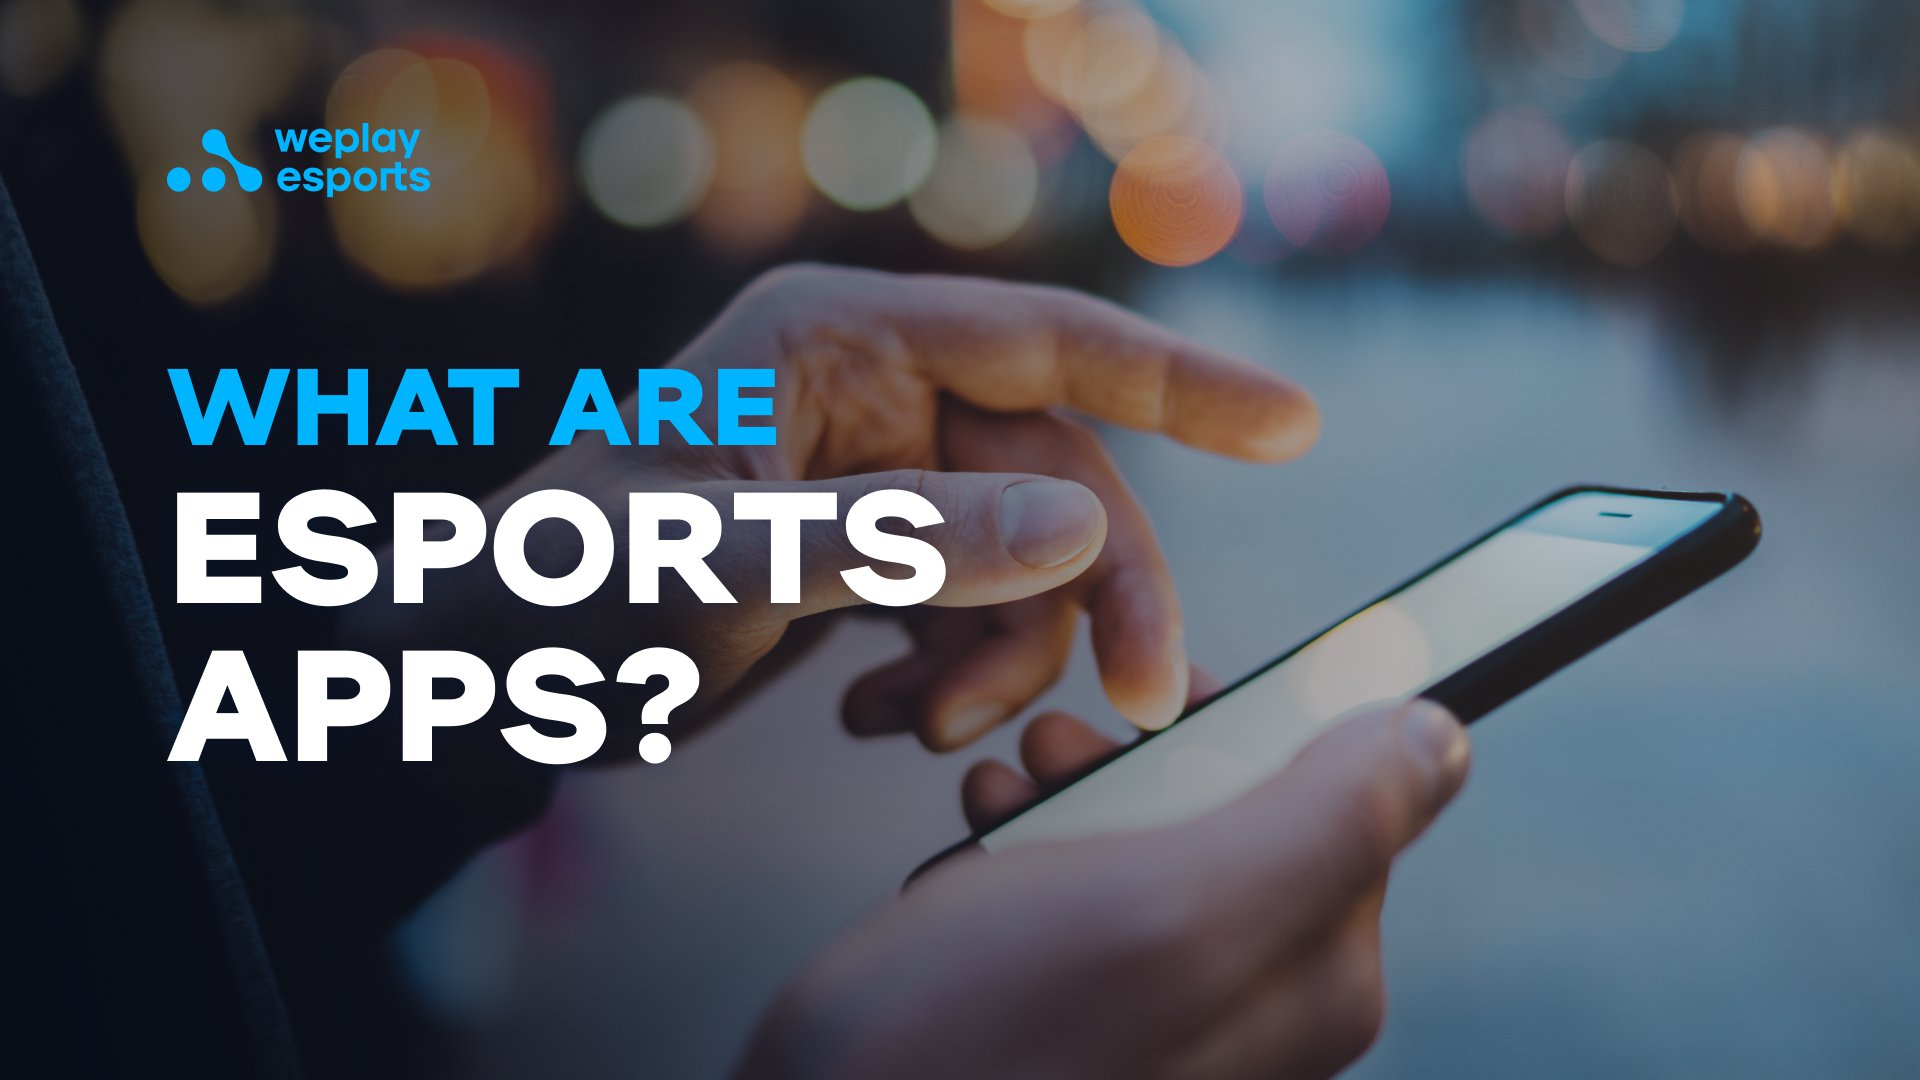 What Are Esport Apps?